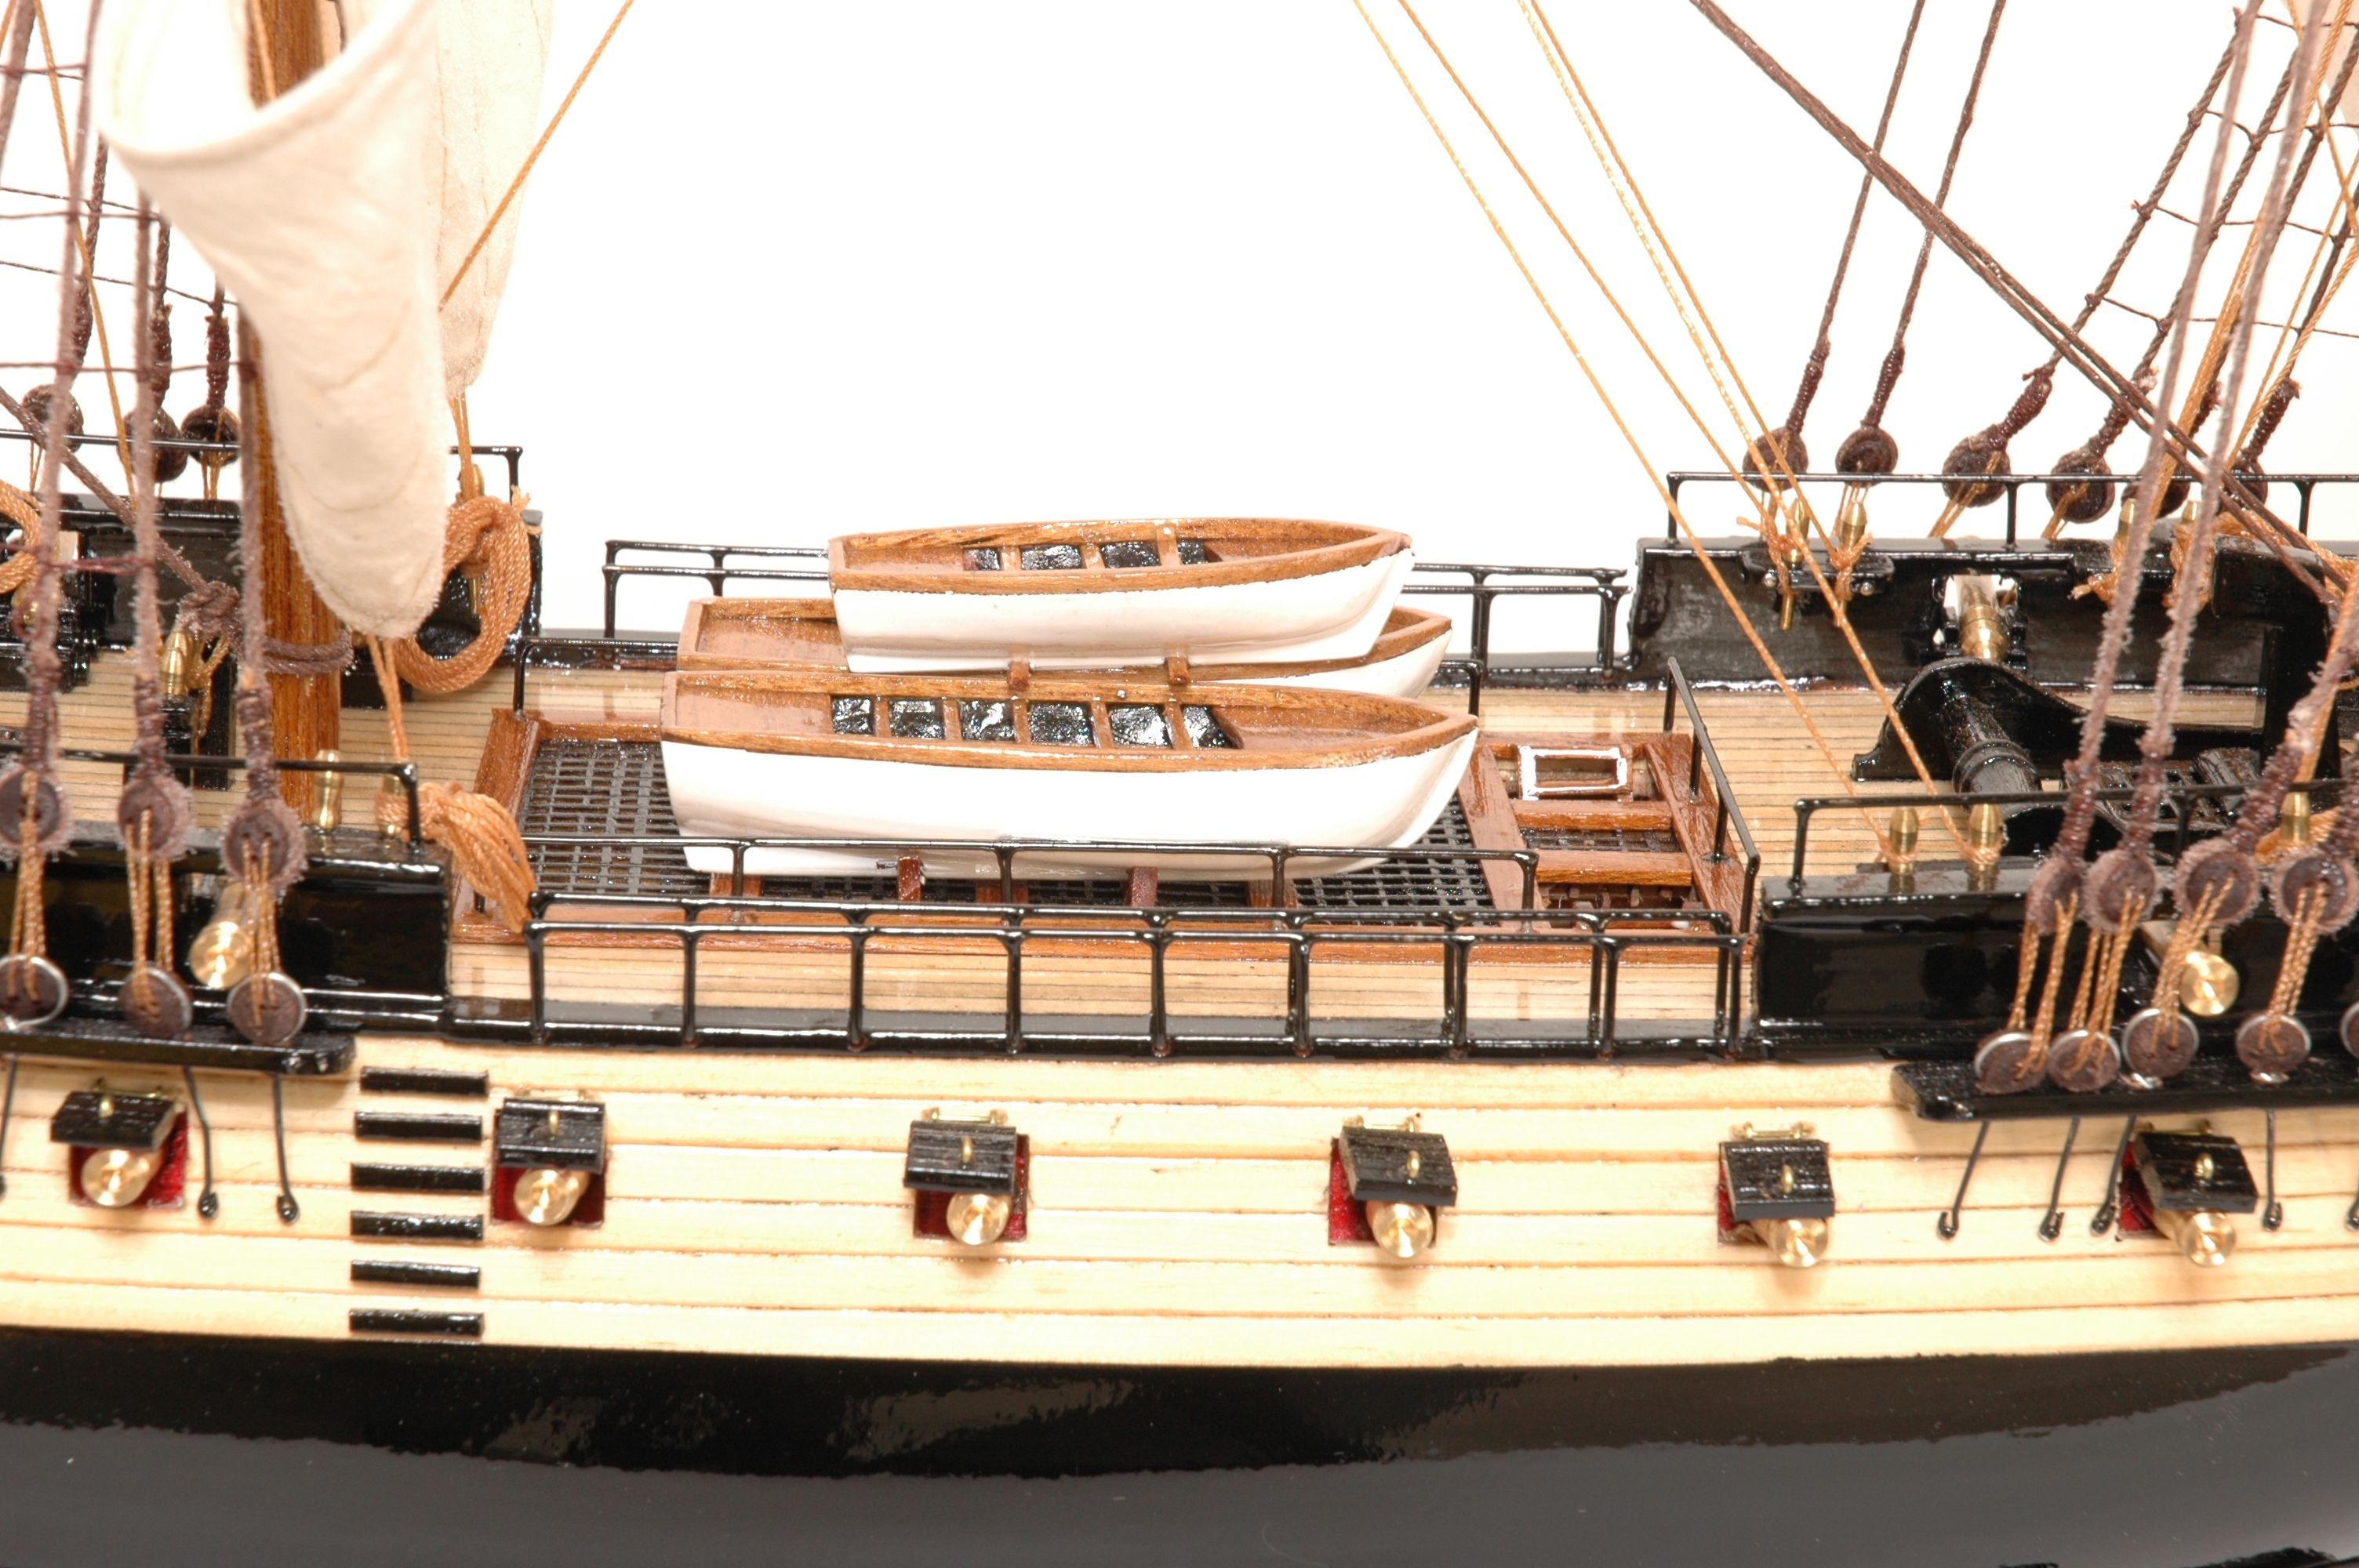 488-8347-HMS-Surprise-Model-Ship-Superior-Range